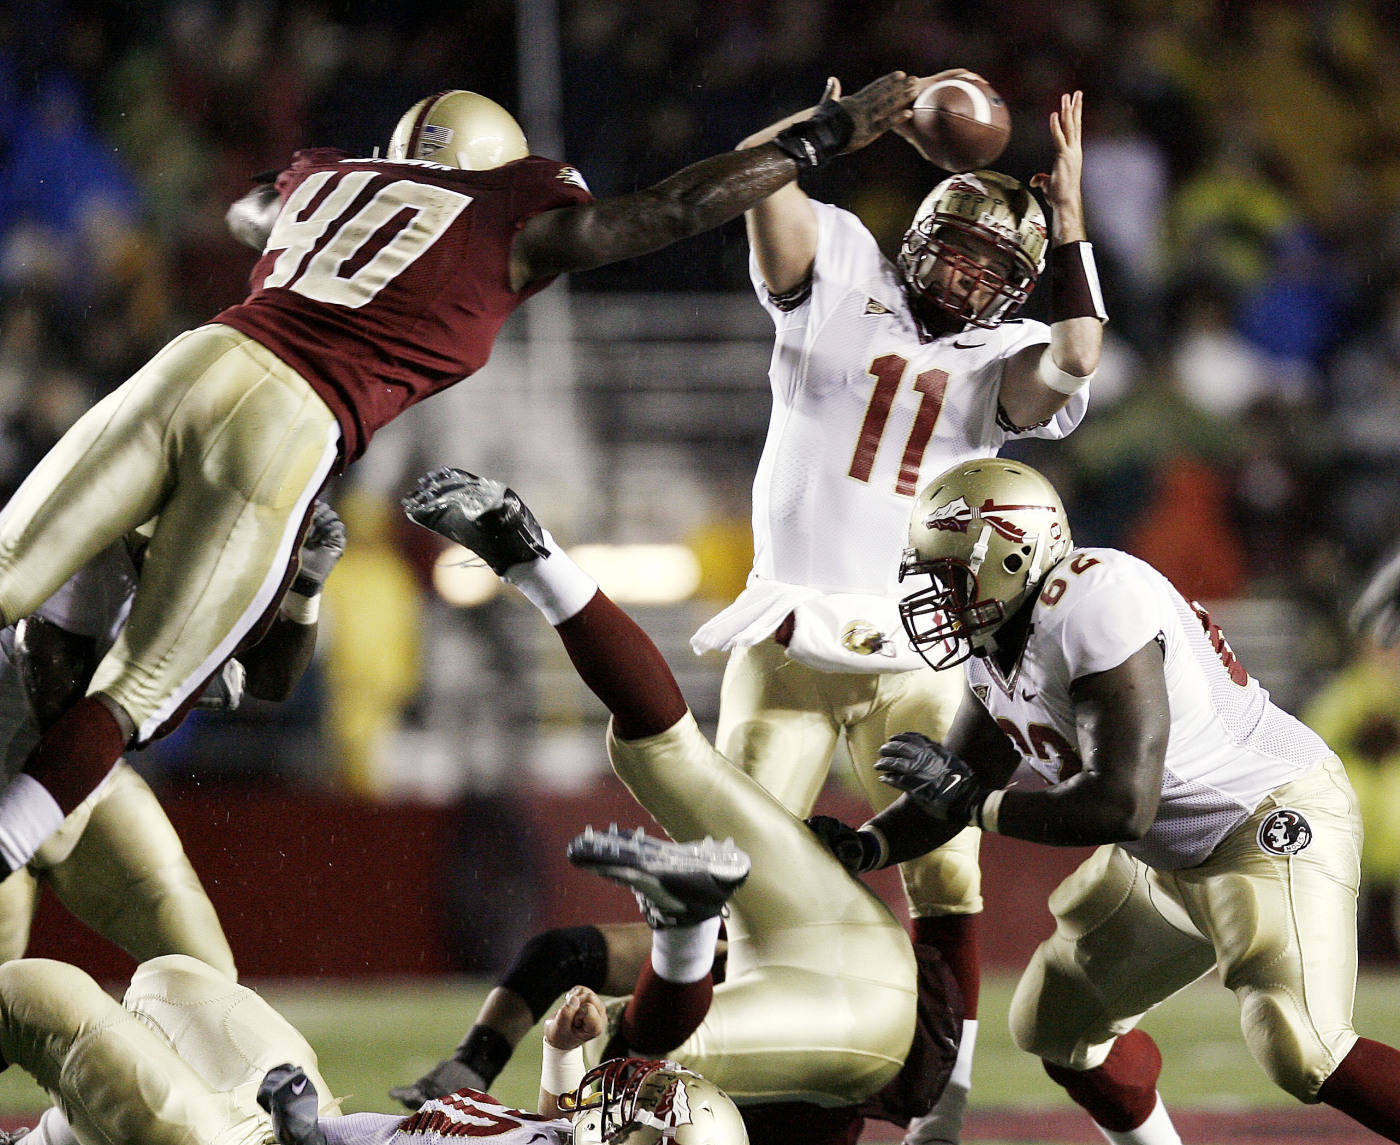 Florida State quarterback Drew Weatherford (11) tries to escape the rush of Boston College's JoLonn Dunbar (40) during the first half of a football game in Boston on Saturday, Nov. 3, 2007. (AP Photo/Winslow Townson)